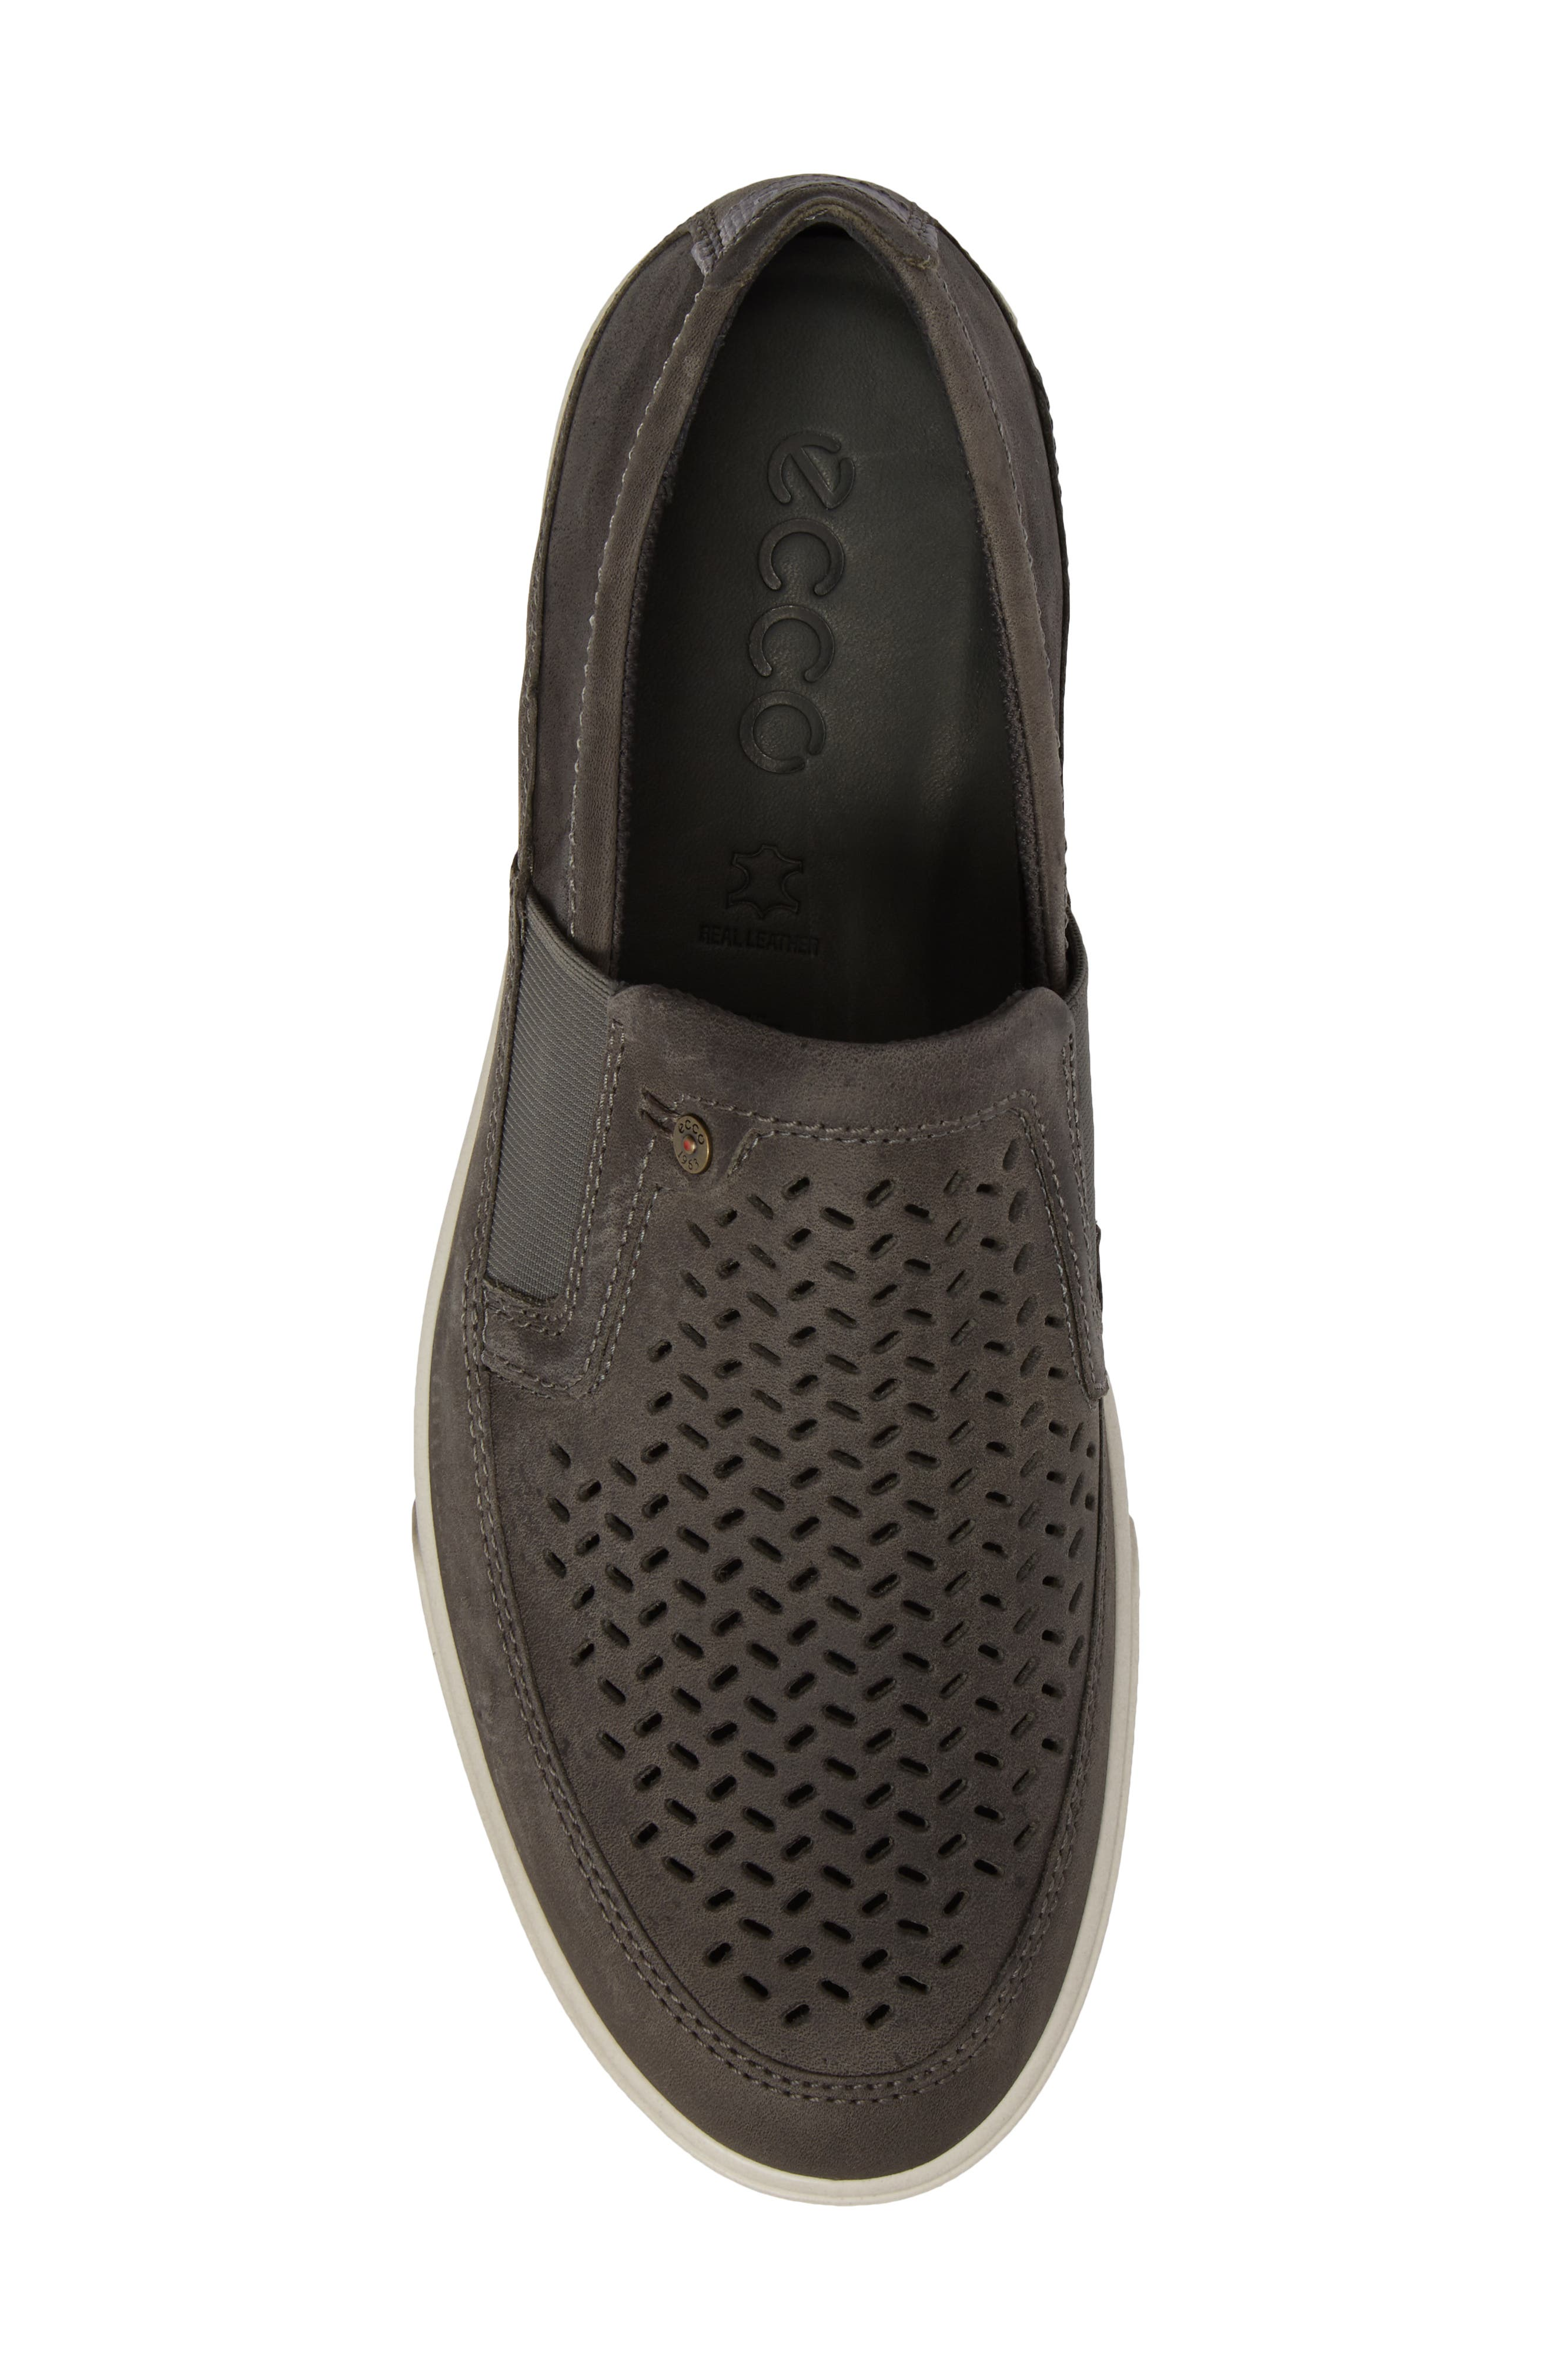 'Collin' Perforated Slip On Sneaker,                             Alternate thumbnail 5, color,                             Titanium Leather